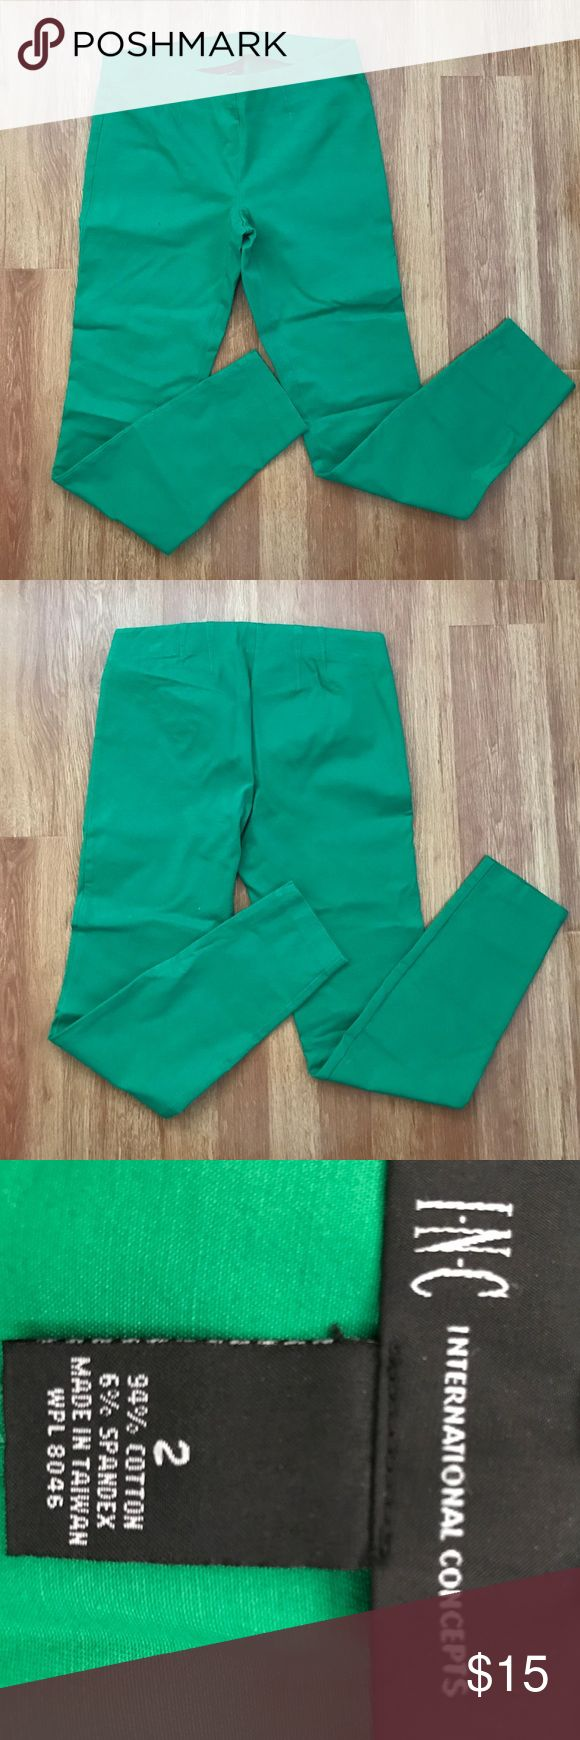 INC Pants INC green pants. Good condition. Inseam 27. INC International Concepts Pants Ankle & Cropped